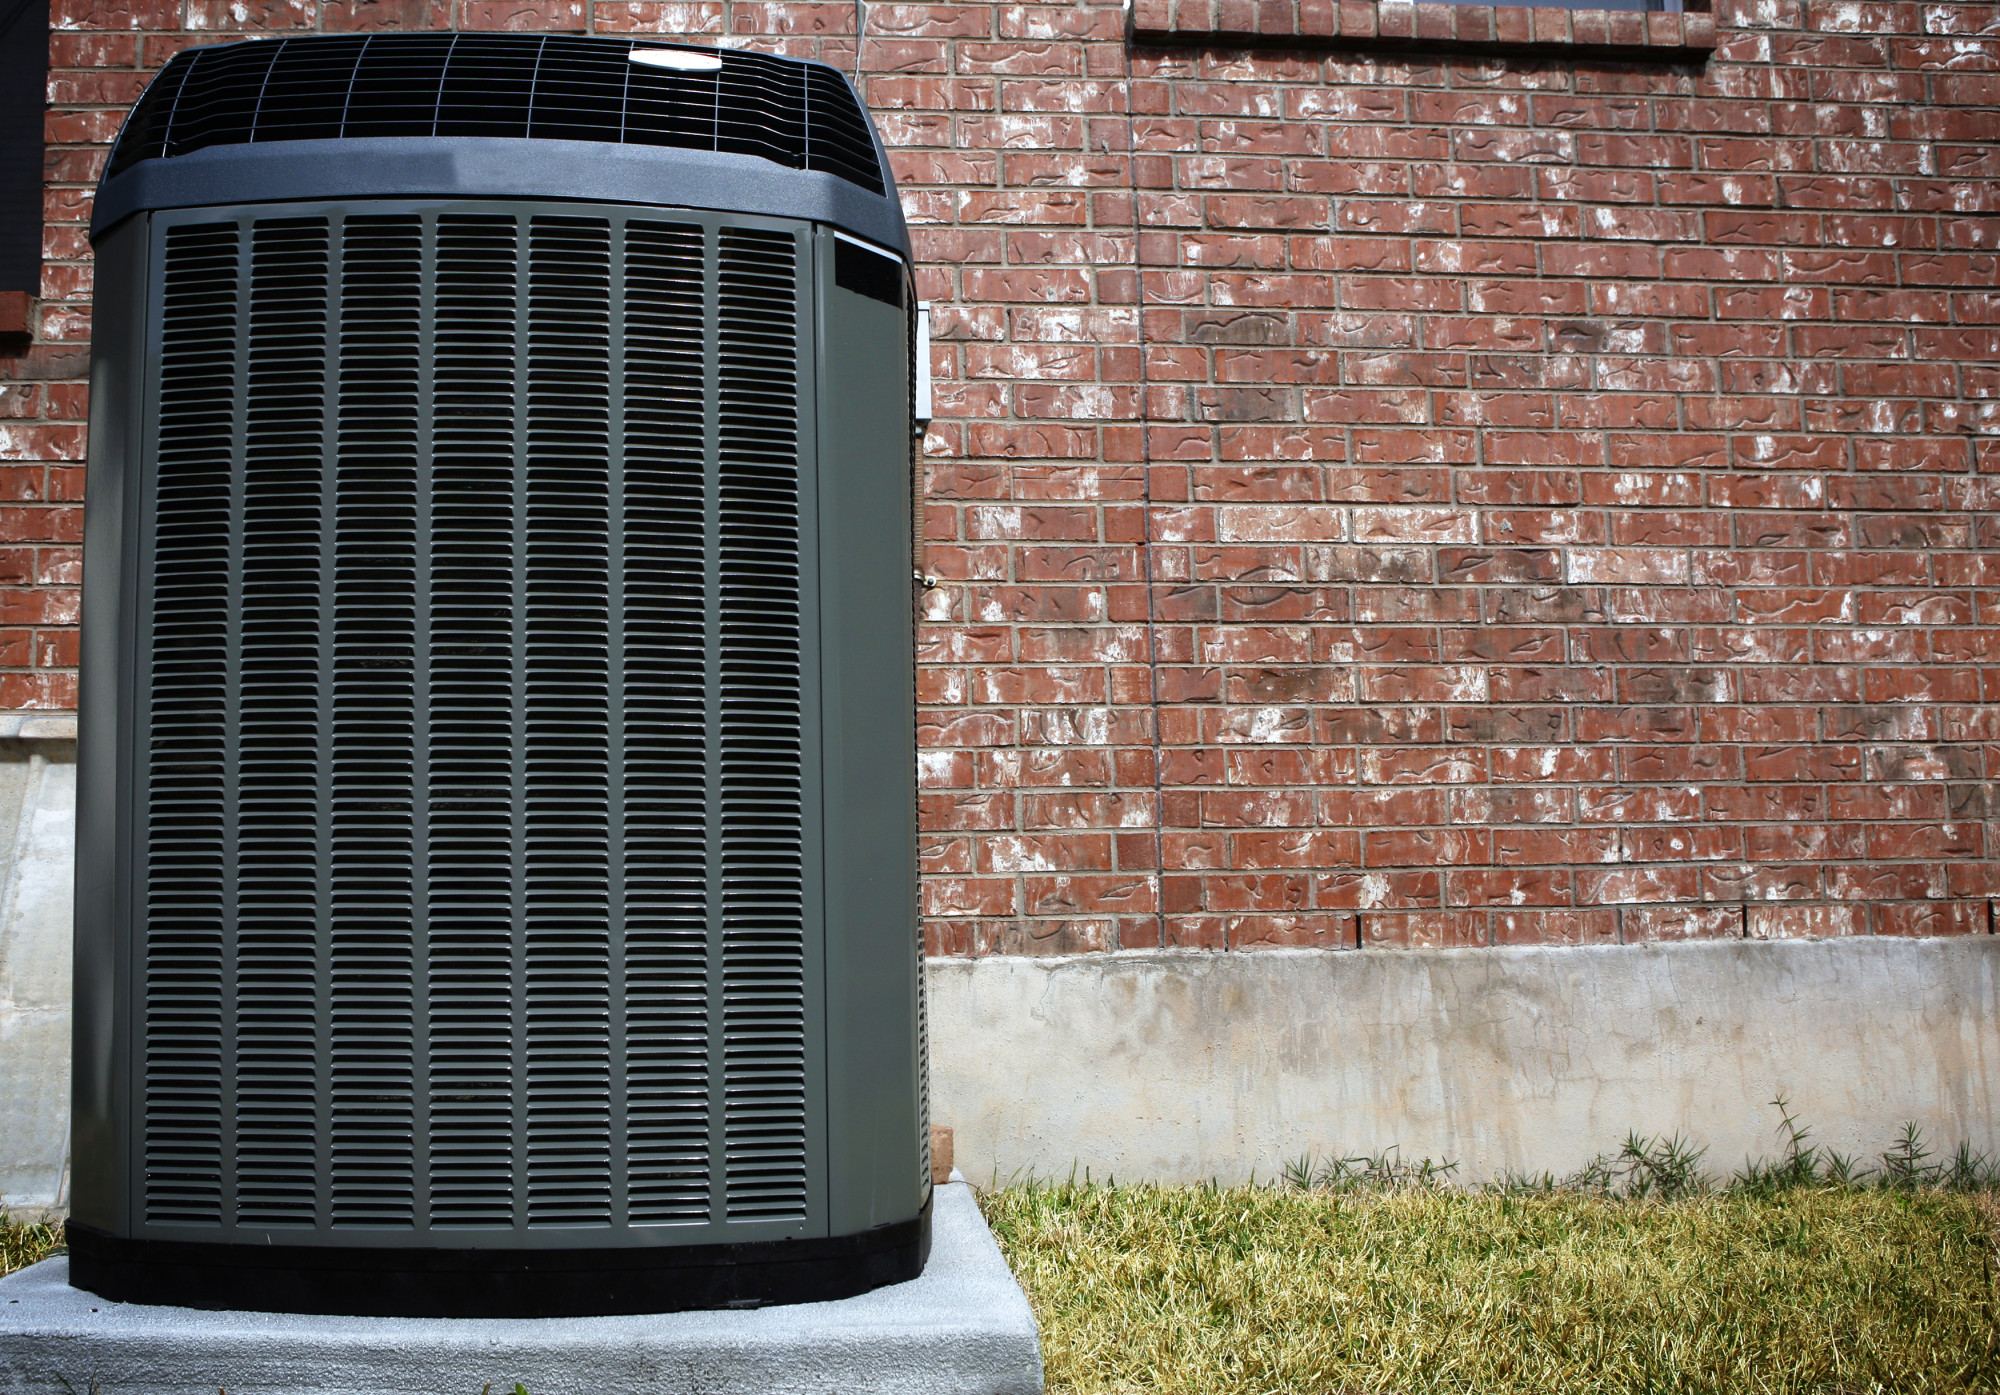 Beat the Heat: 4 Types of Home Cooling Systems to Consider